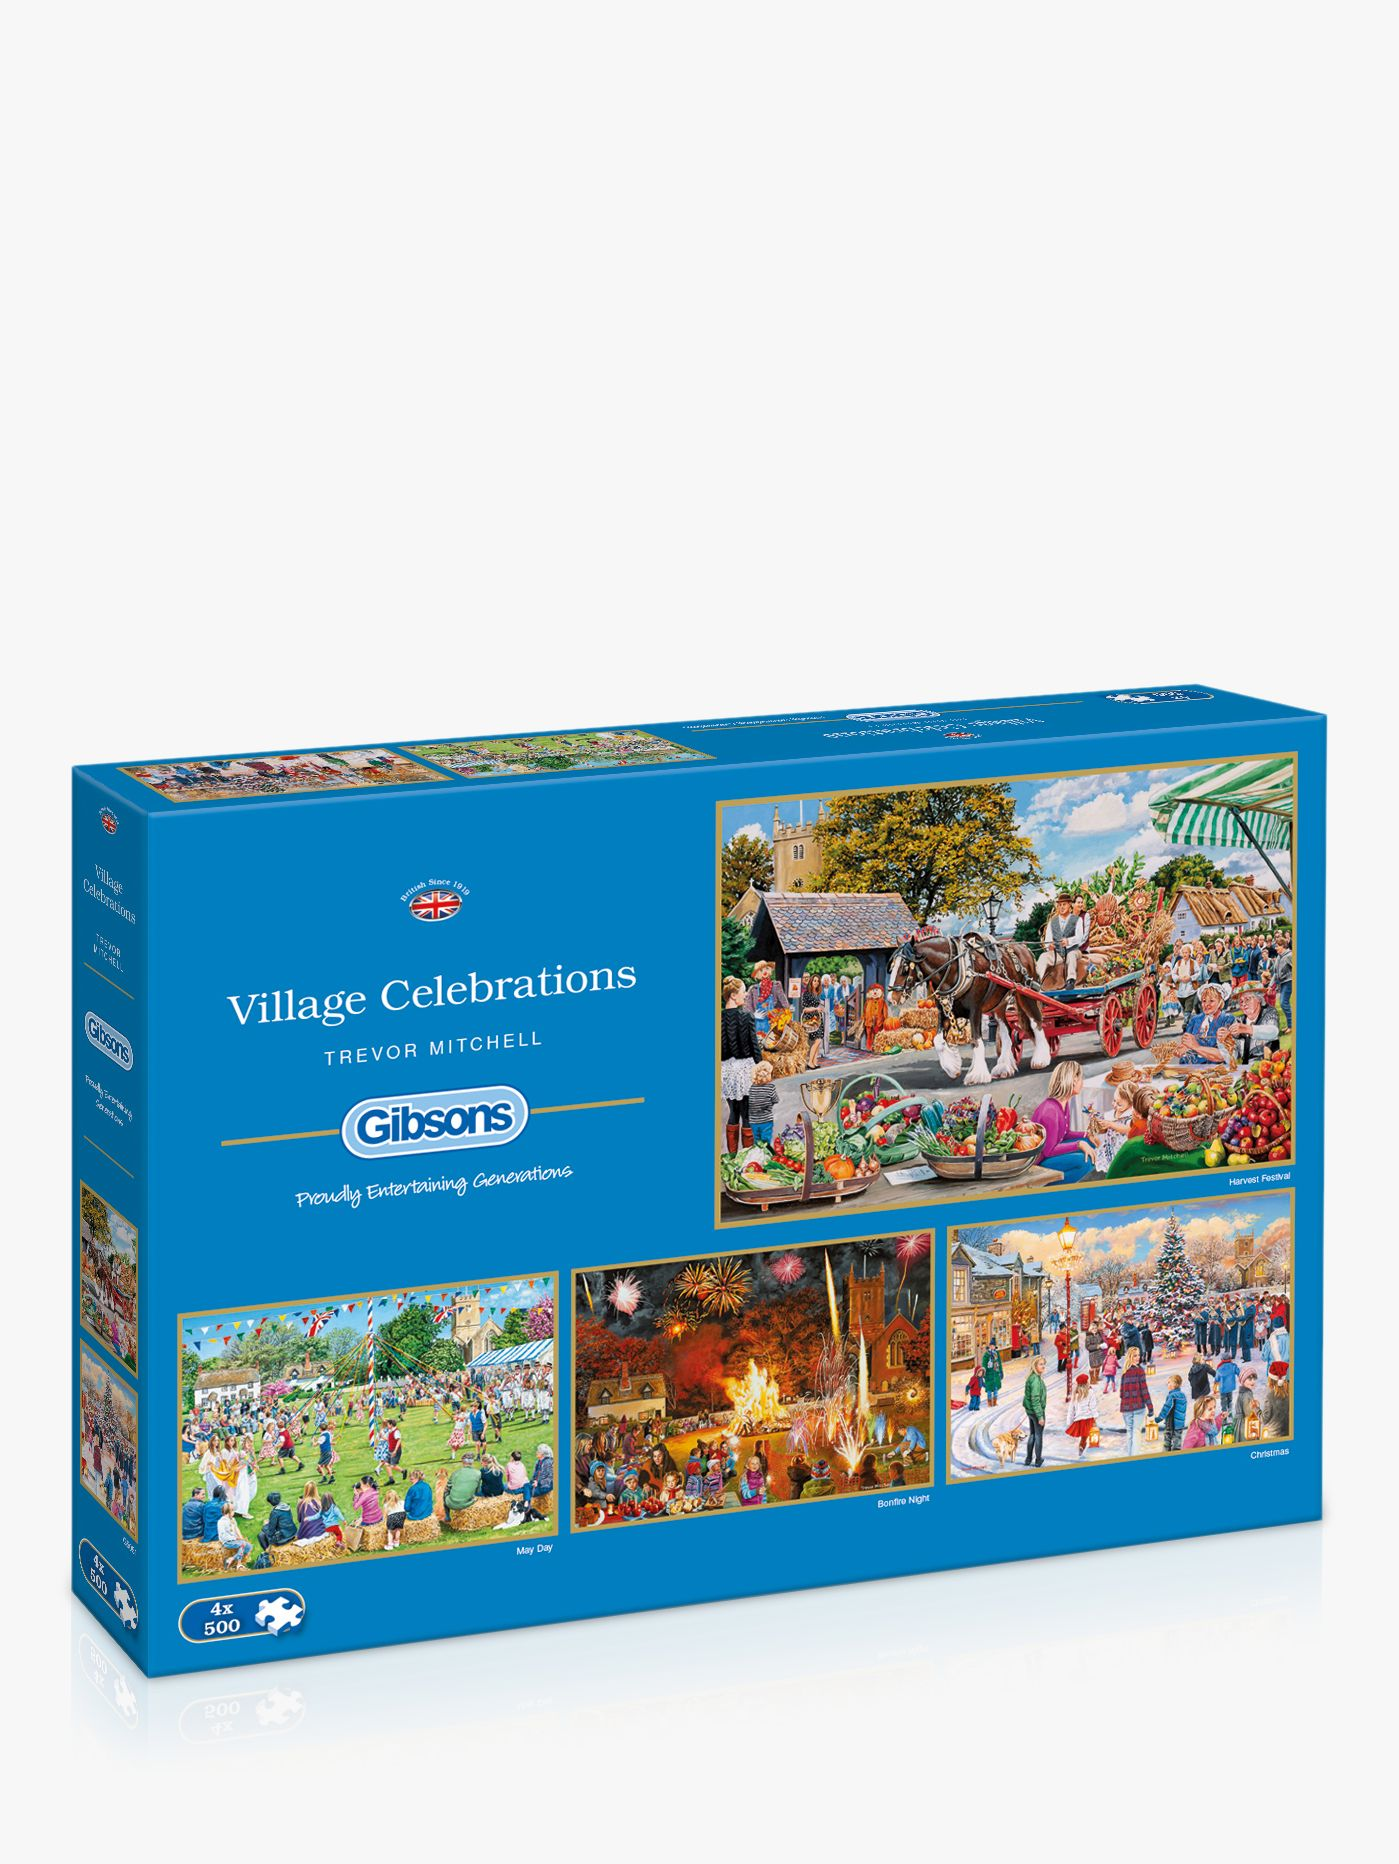 Gibsons Gibsons Village Celebrations 500 Piece Jigsaw Puzzle, Set of 4